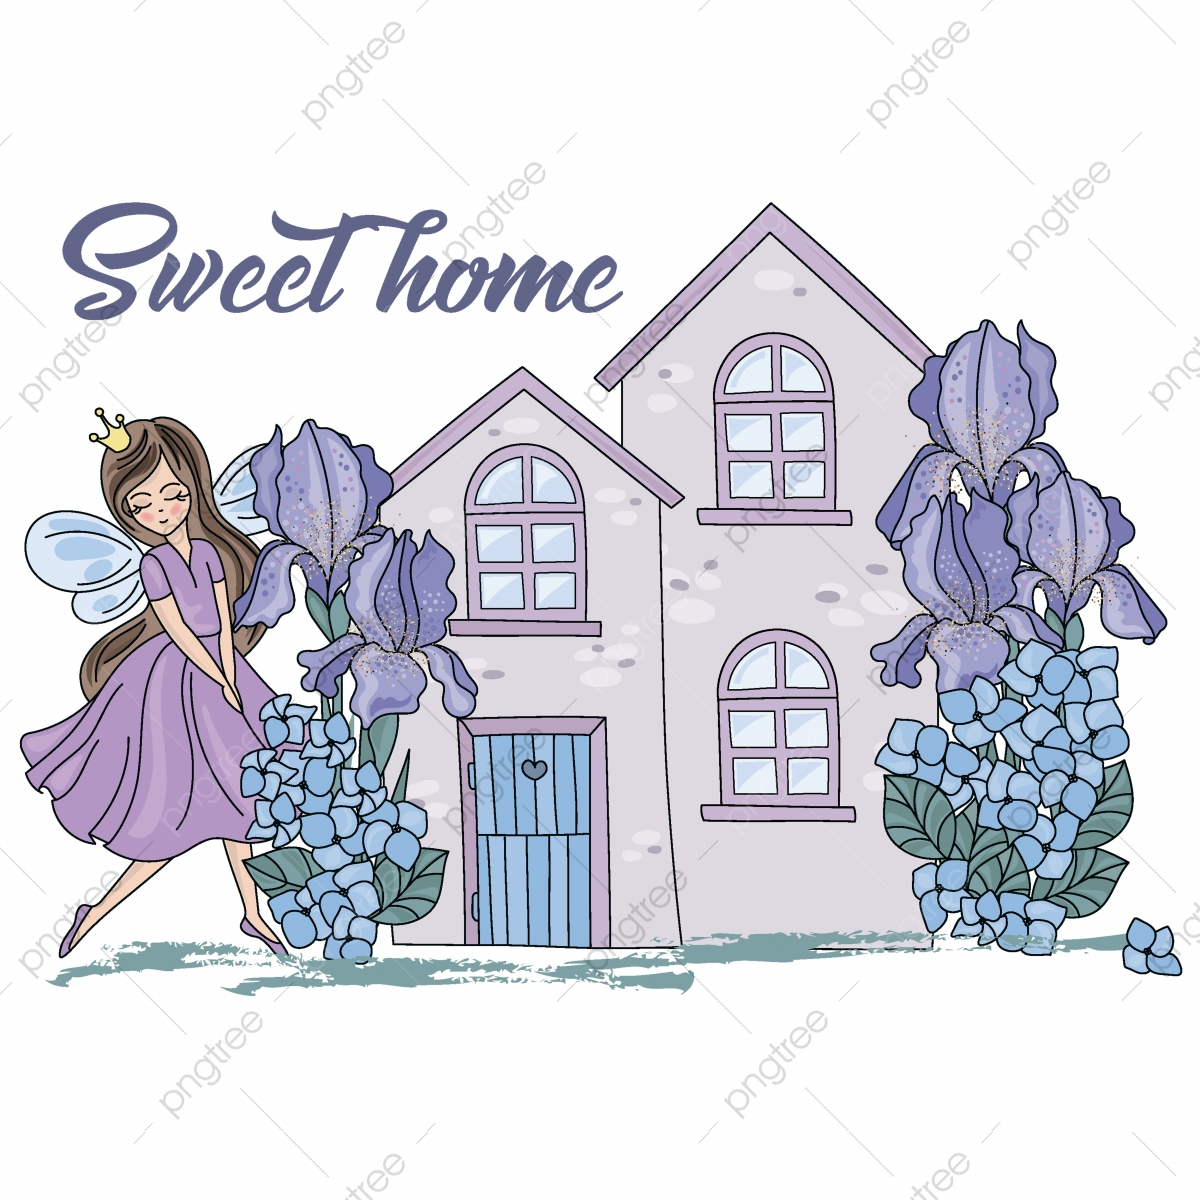 Houses clipart wedding. Elements design for